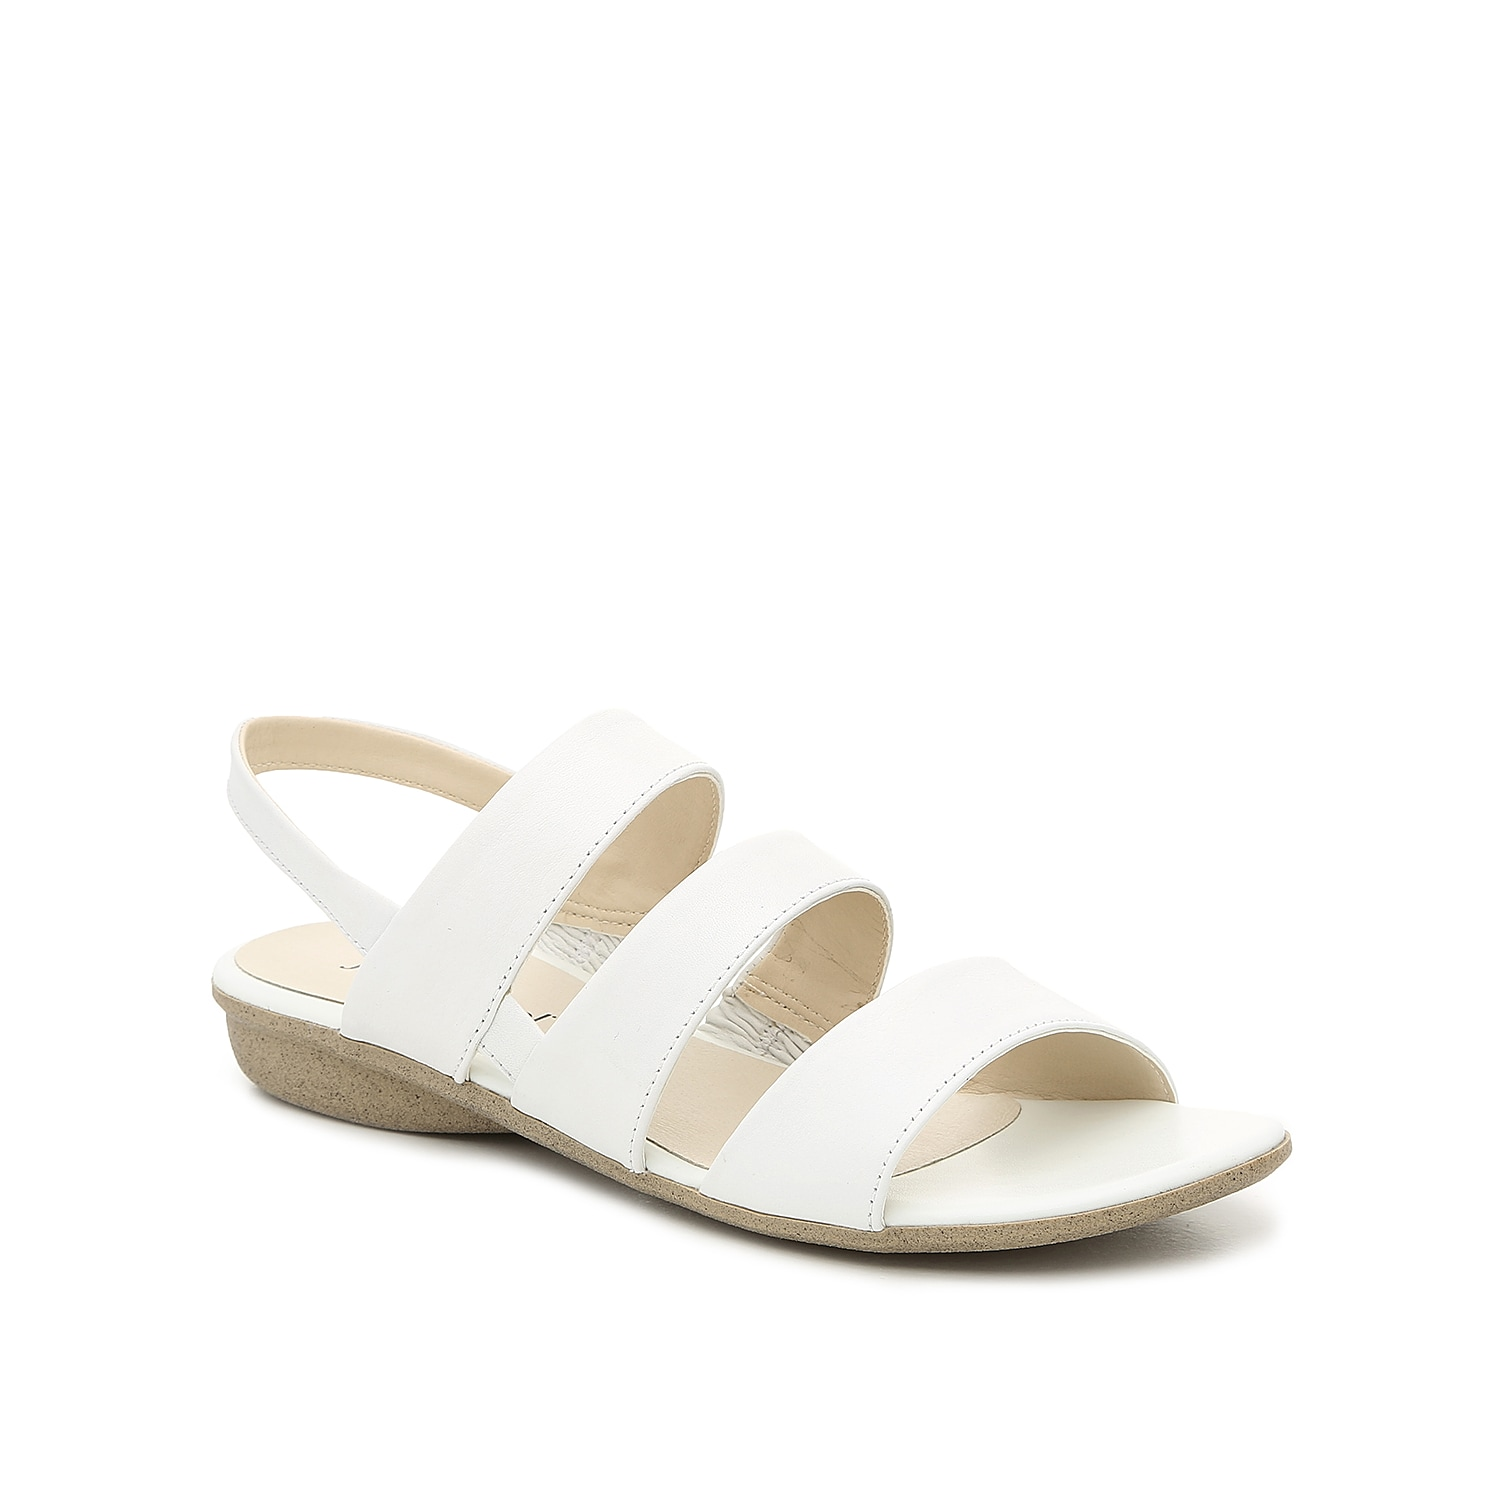 Add enticement to your shoe collection with the Fabia sandal from Josef Seibel. This strappy silhouette features a leather upper and cushioned footbed for daylong wear!